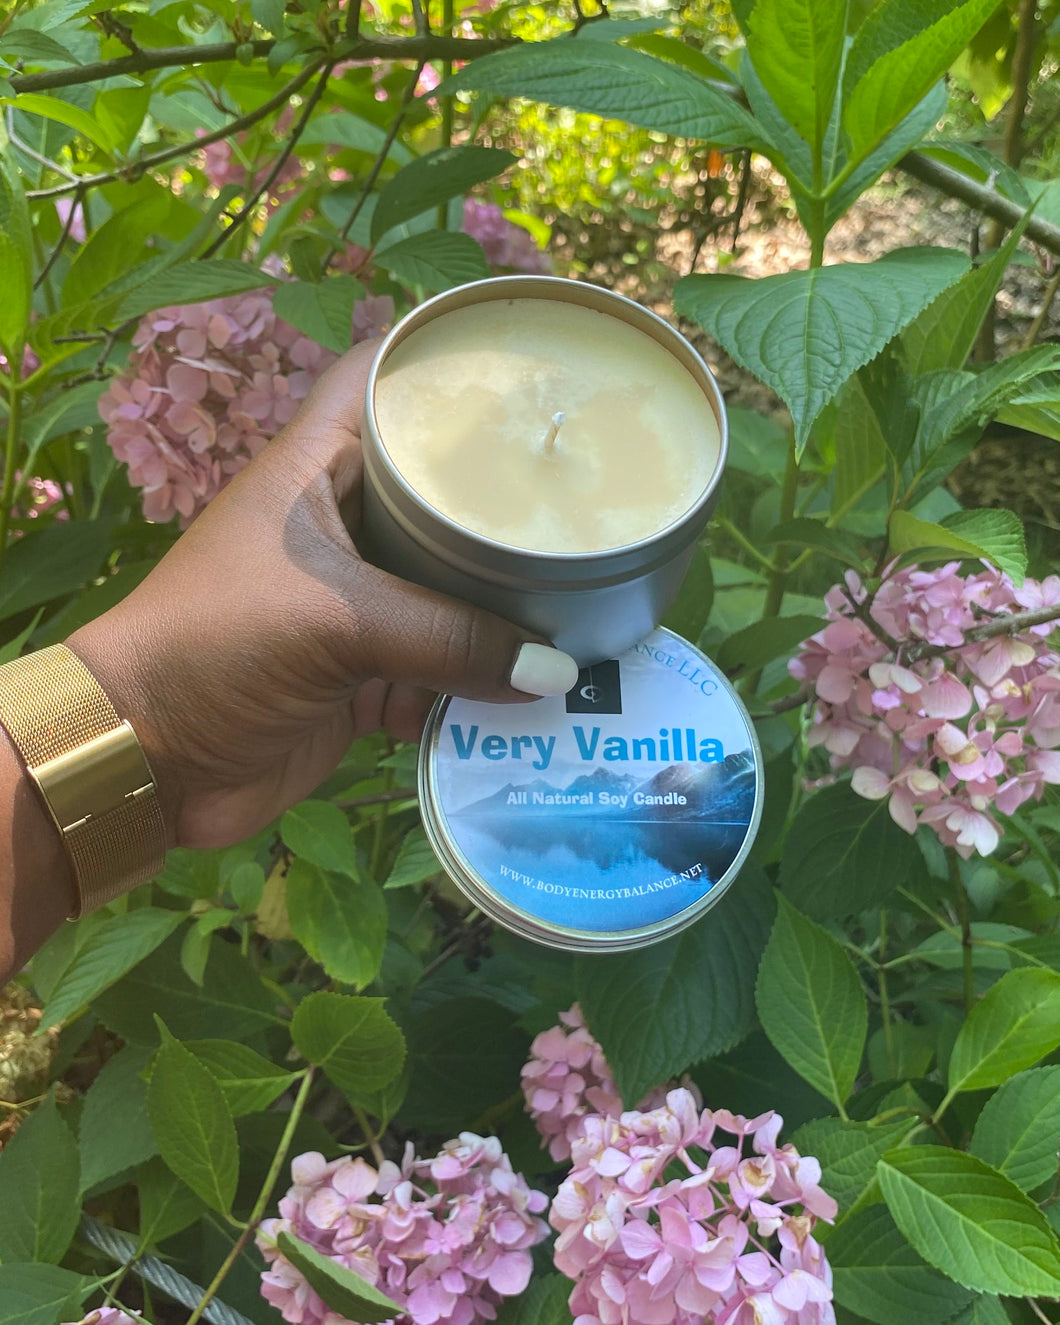 Very Vanilla Natural Soy Candle